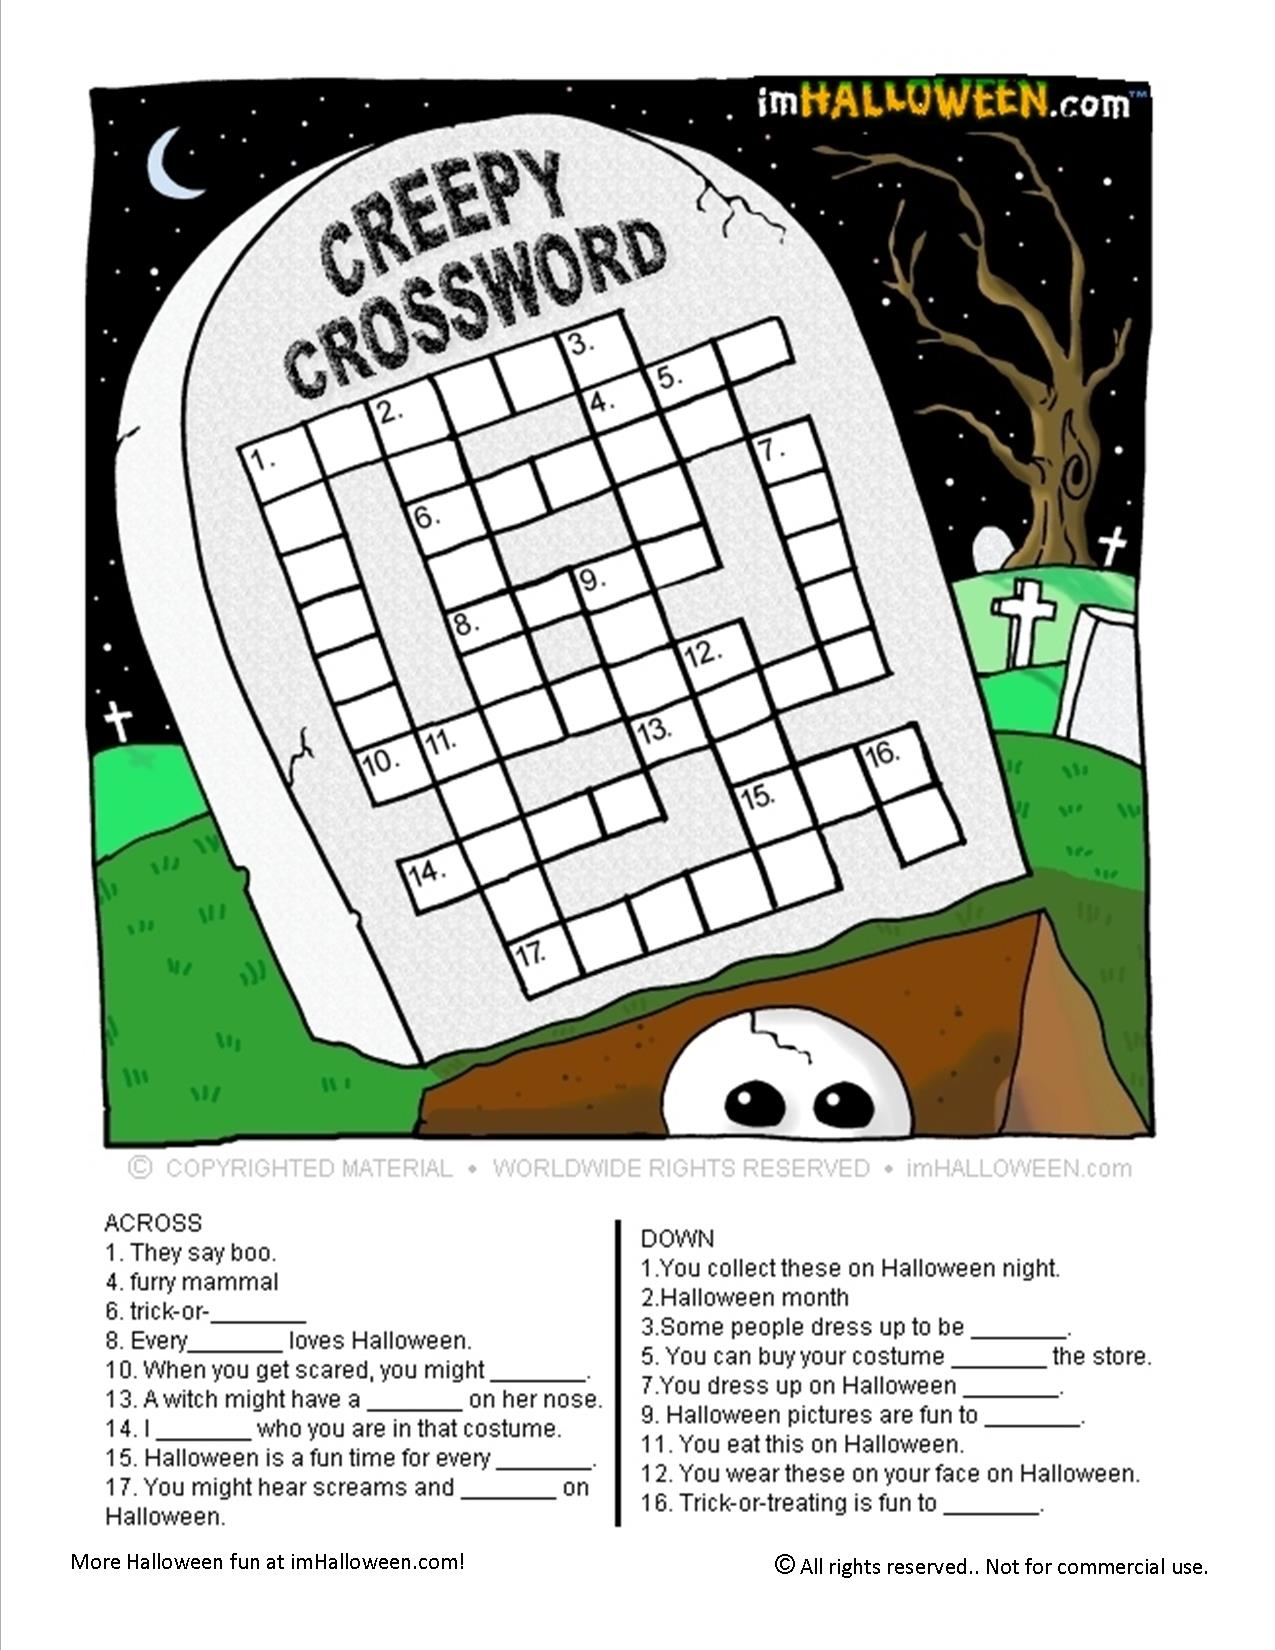 Creepy Halloween Crossword Puzzle